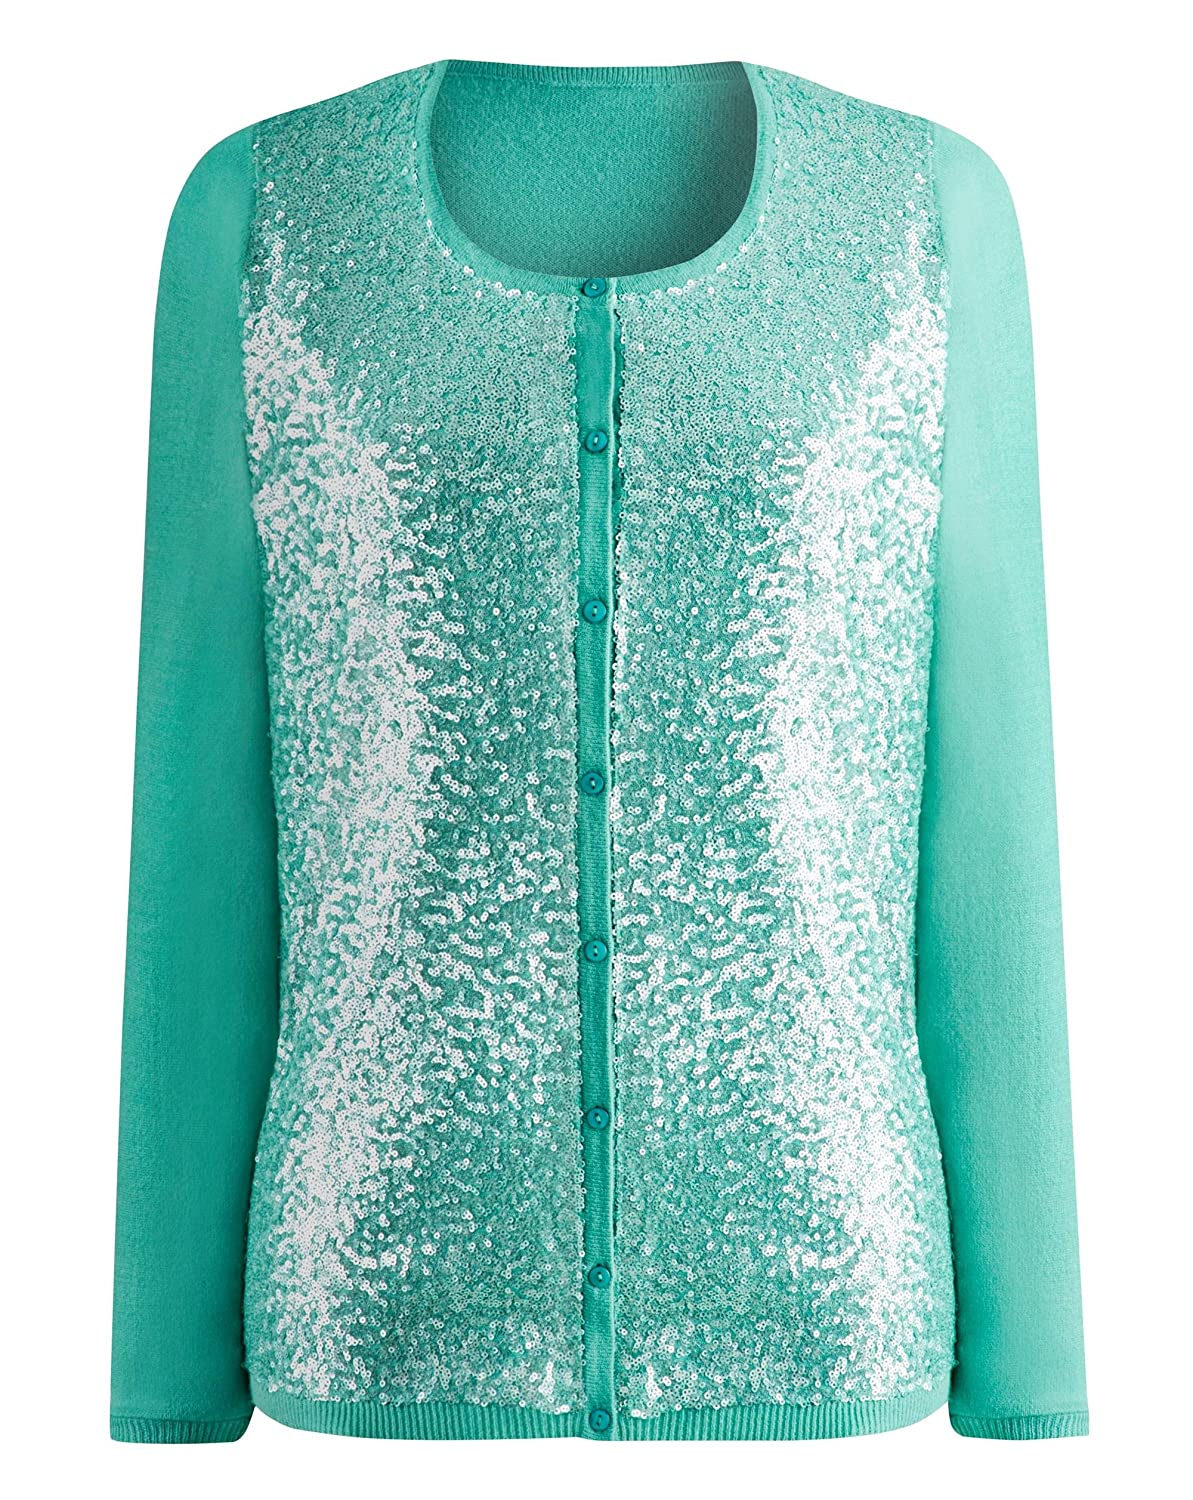 Womens Sequin Cardigan J D Williams